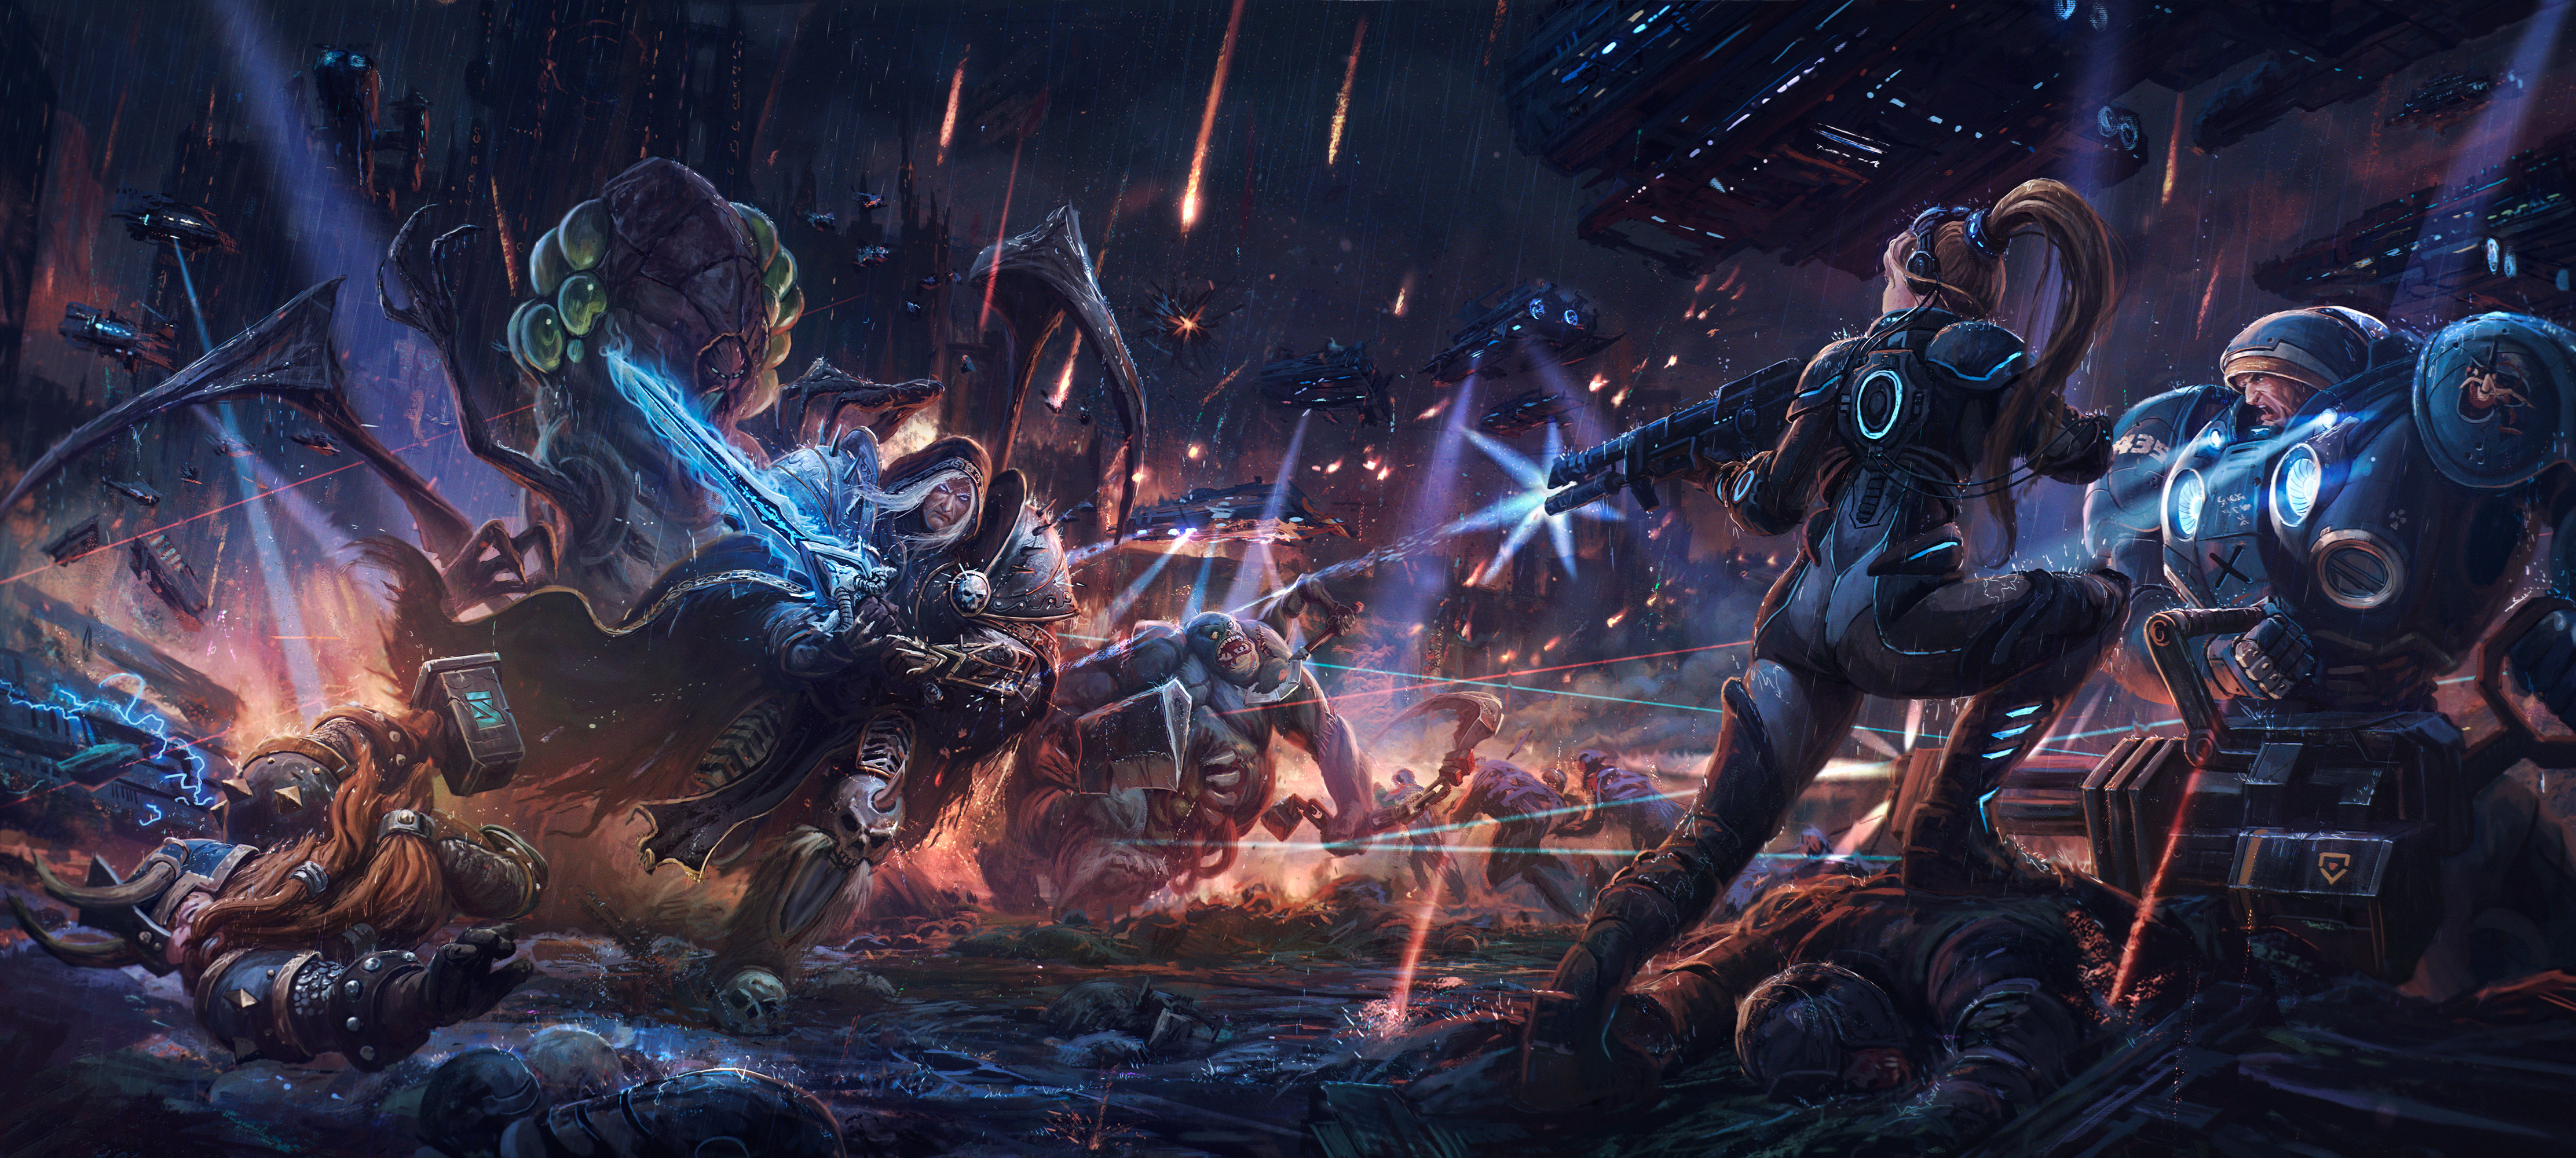 heroes of the storm wallpaper  123 Heroes of the Storm HD Wallpapers | Background Images ...